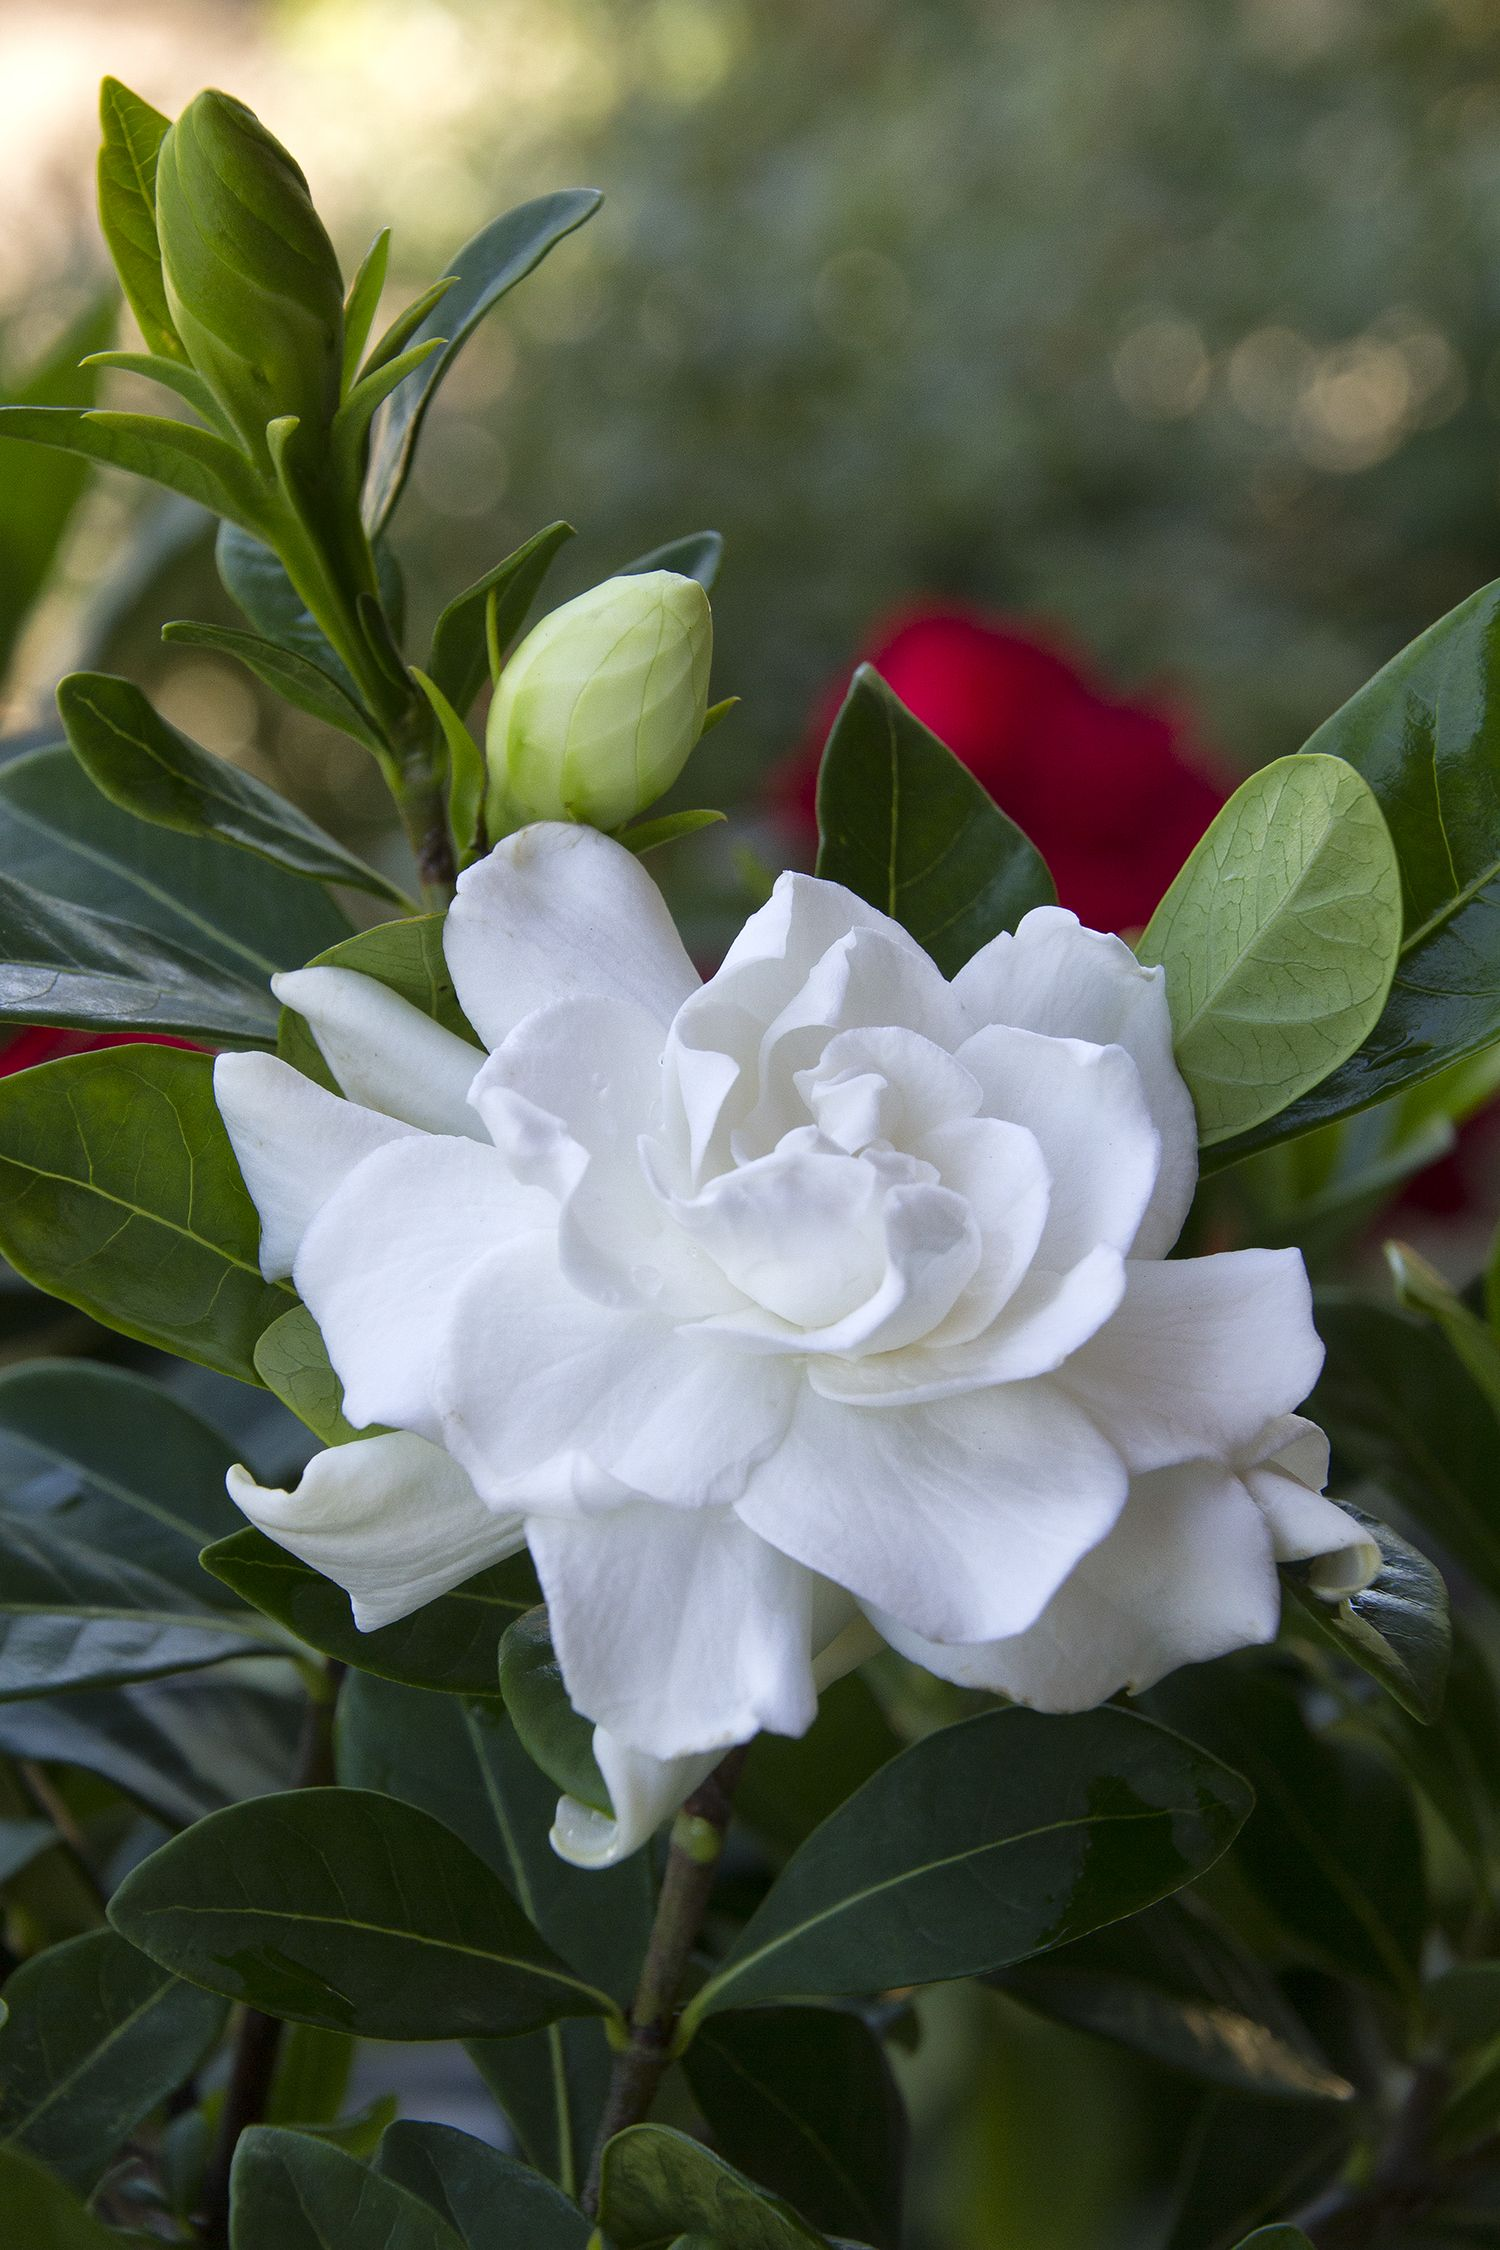 Everblooming Gardenia Monrovia Everblooming Gardenia Pretty Flowers Amazing Flowers White Flowers